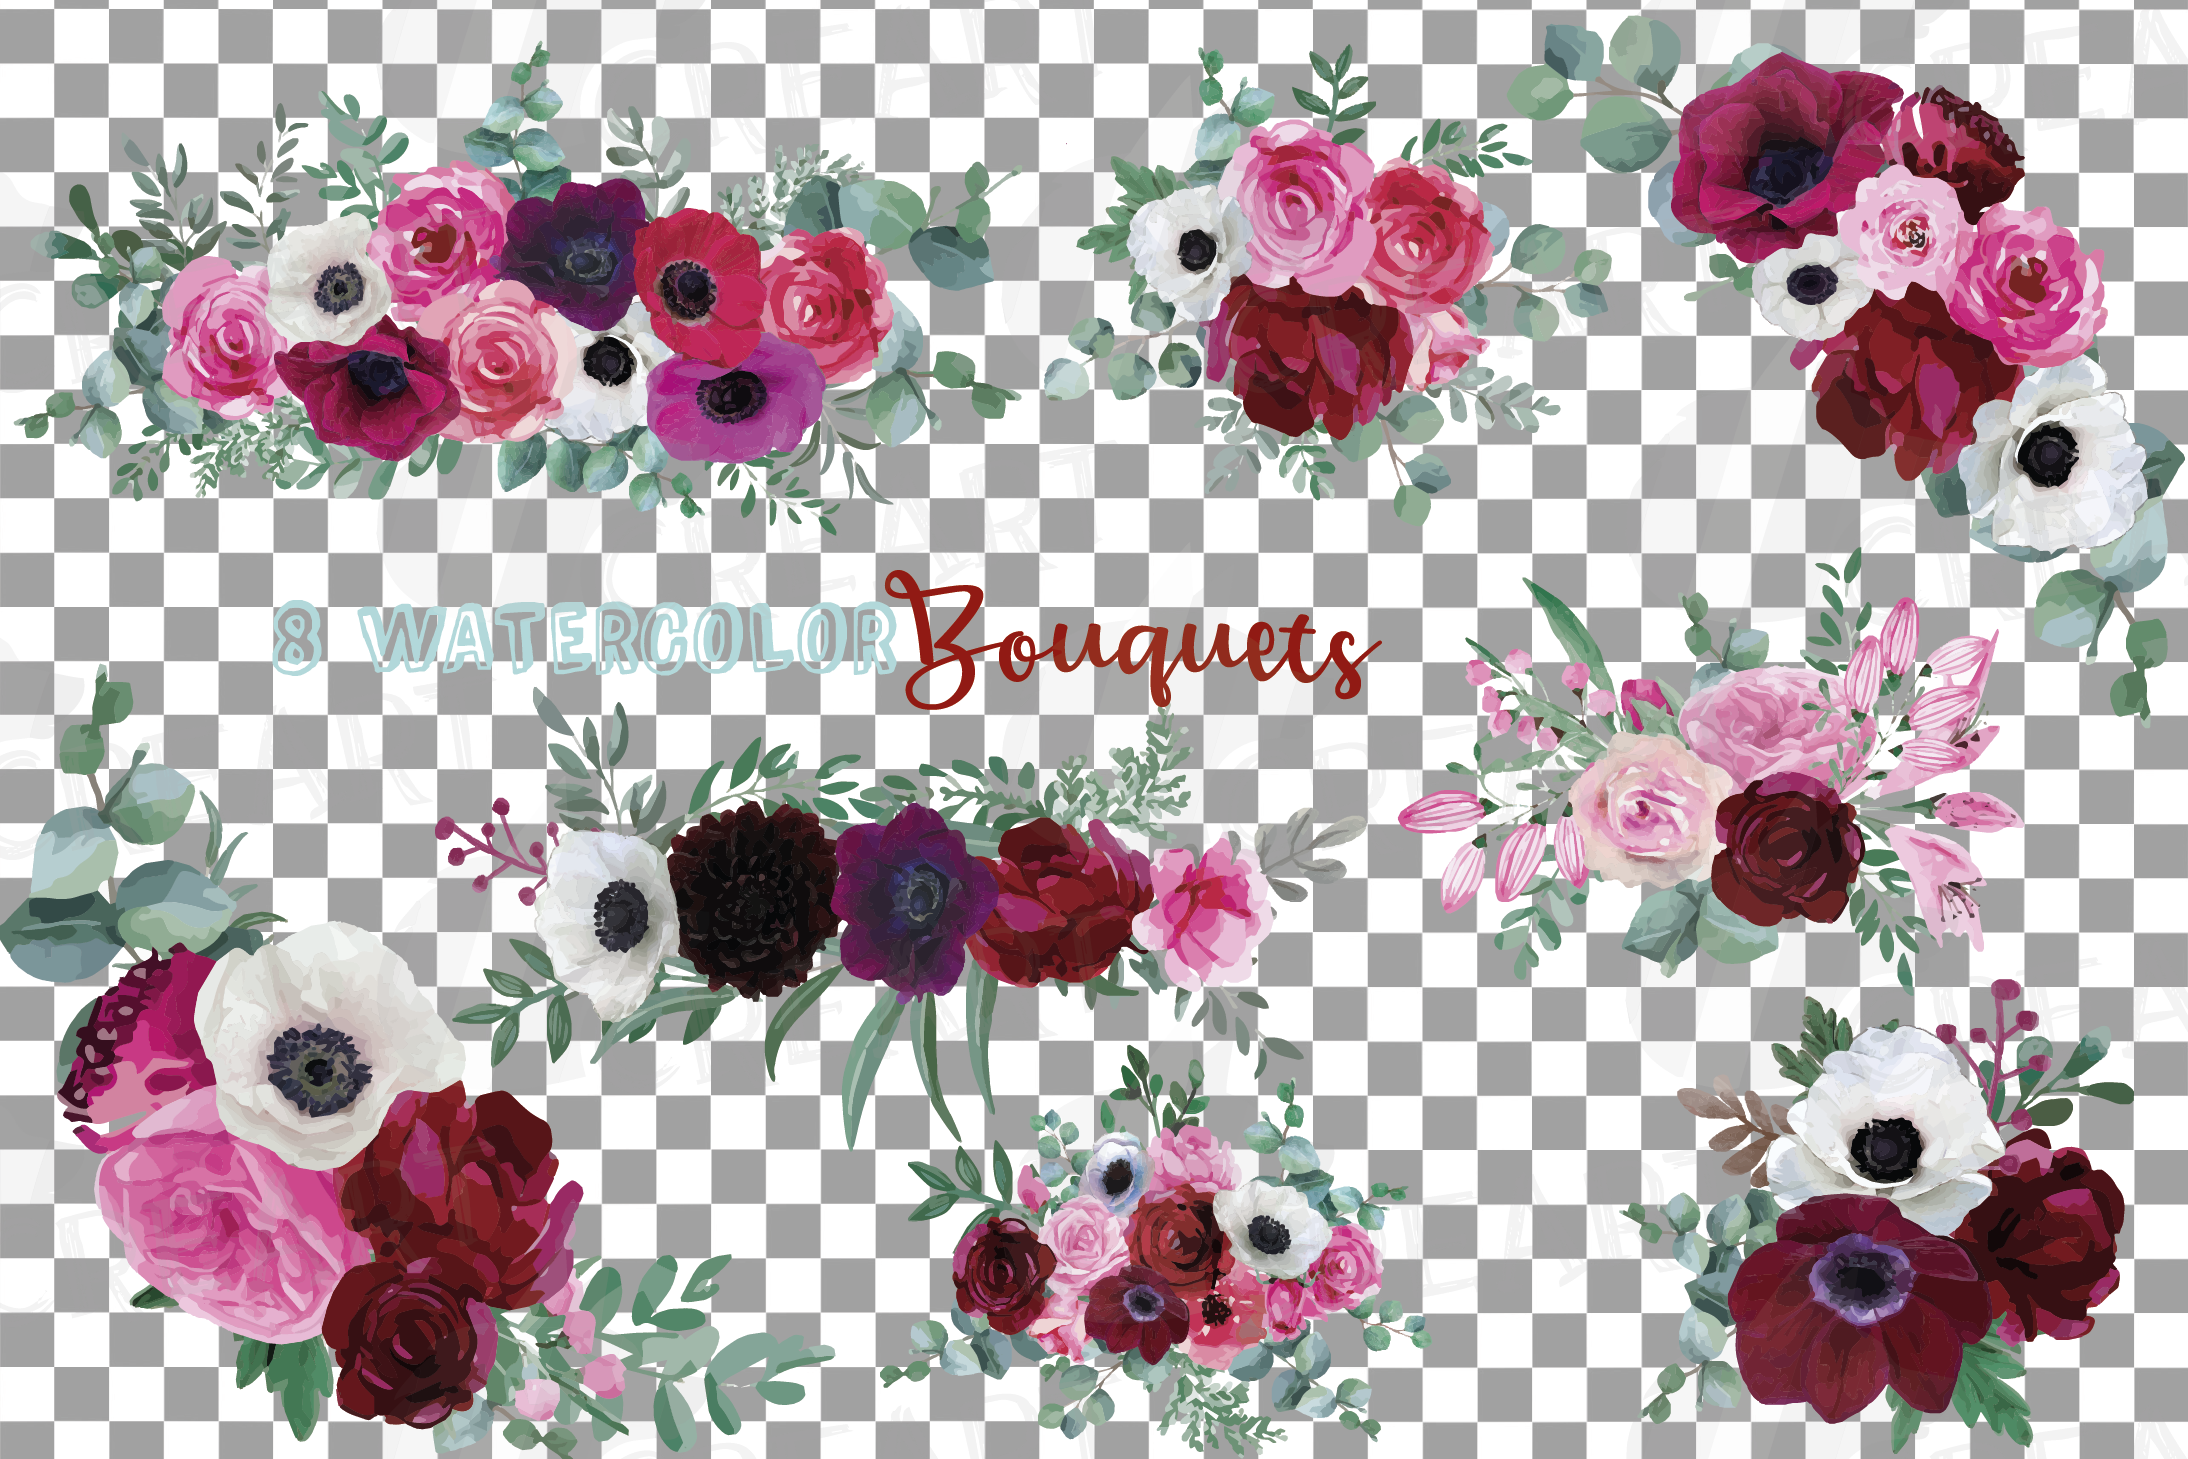 Watercolor elegant floral bouquets 2, rose, anemone decor example image 2